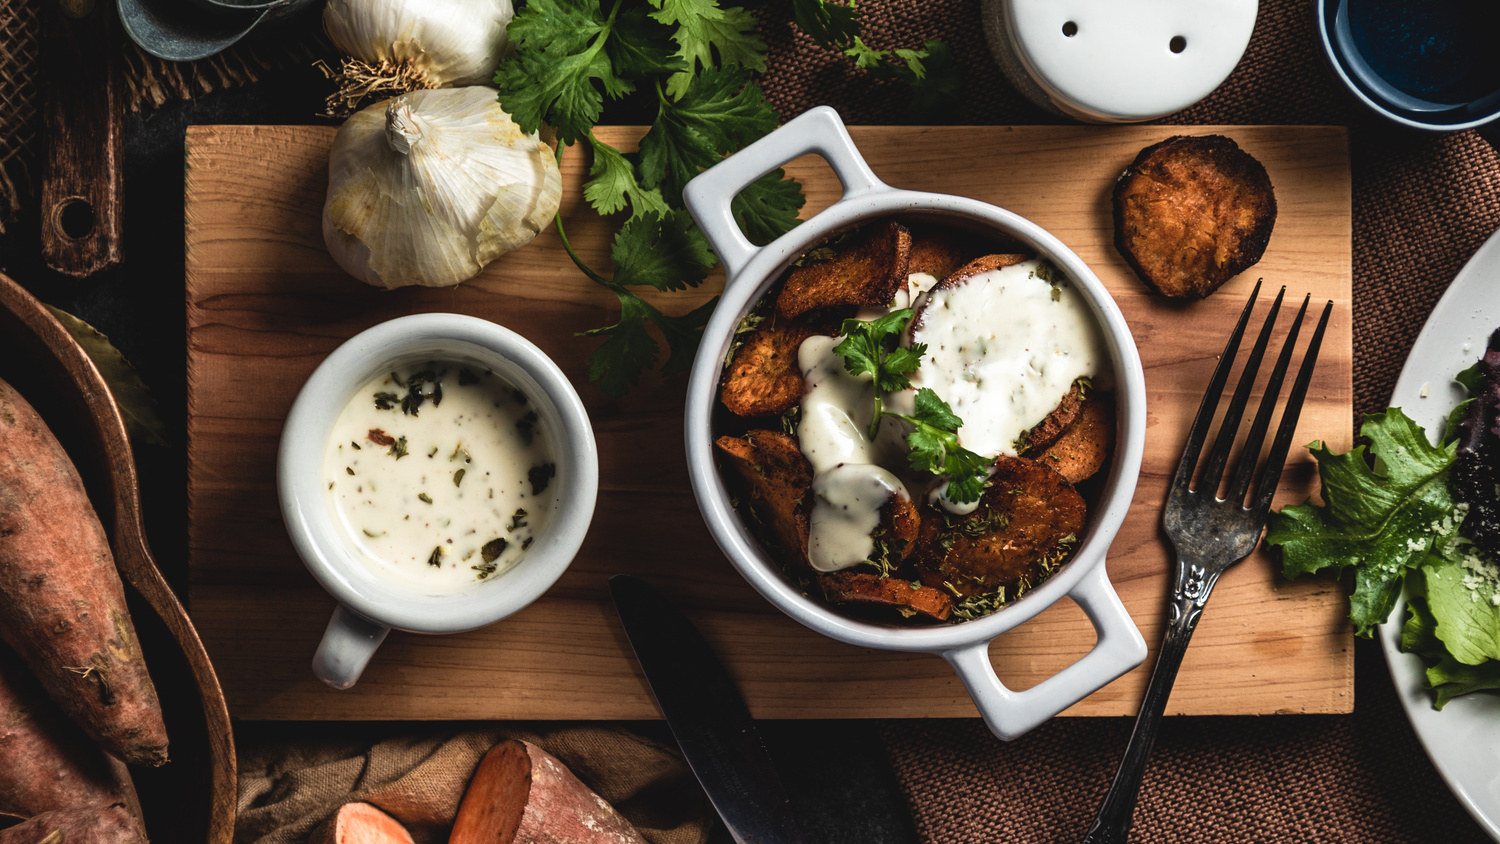 Fried Sweet Potatoes by David Perman